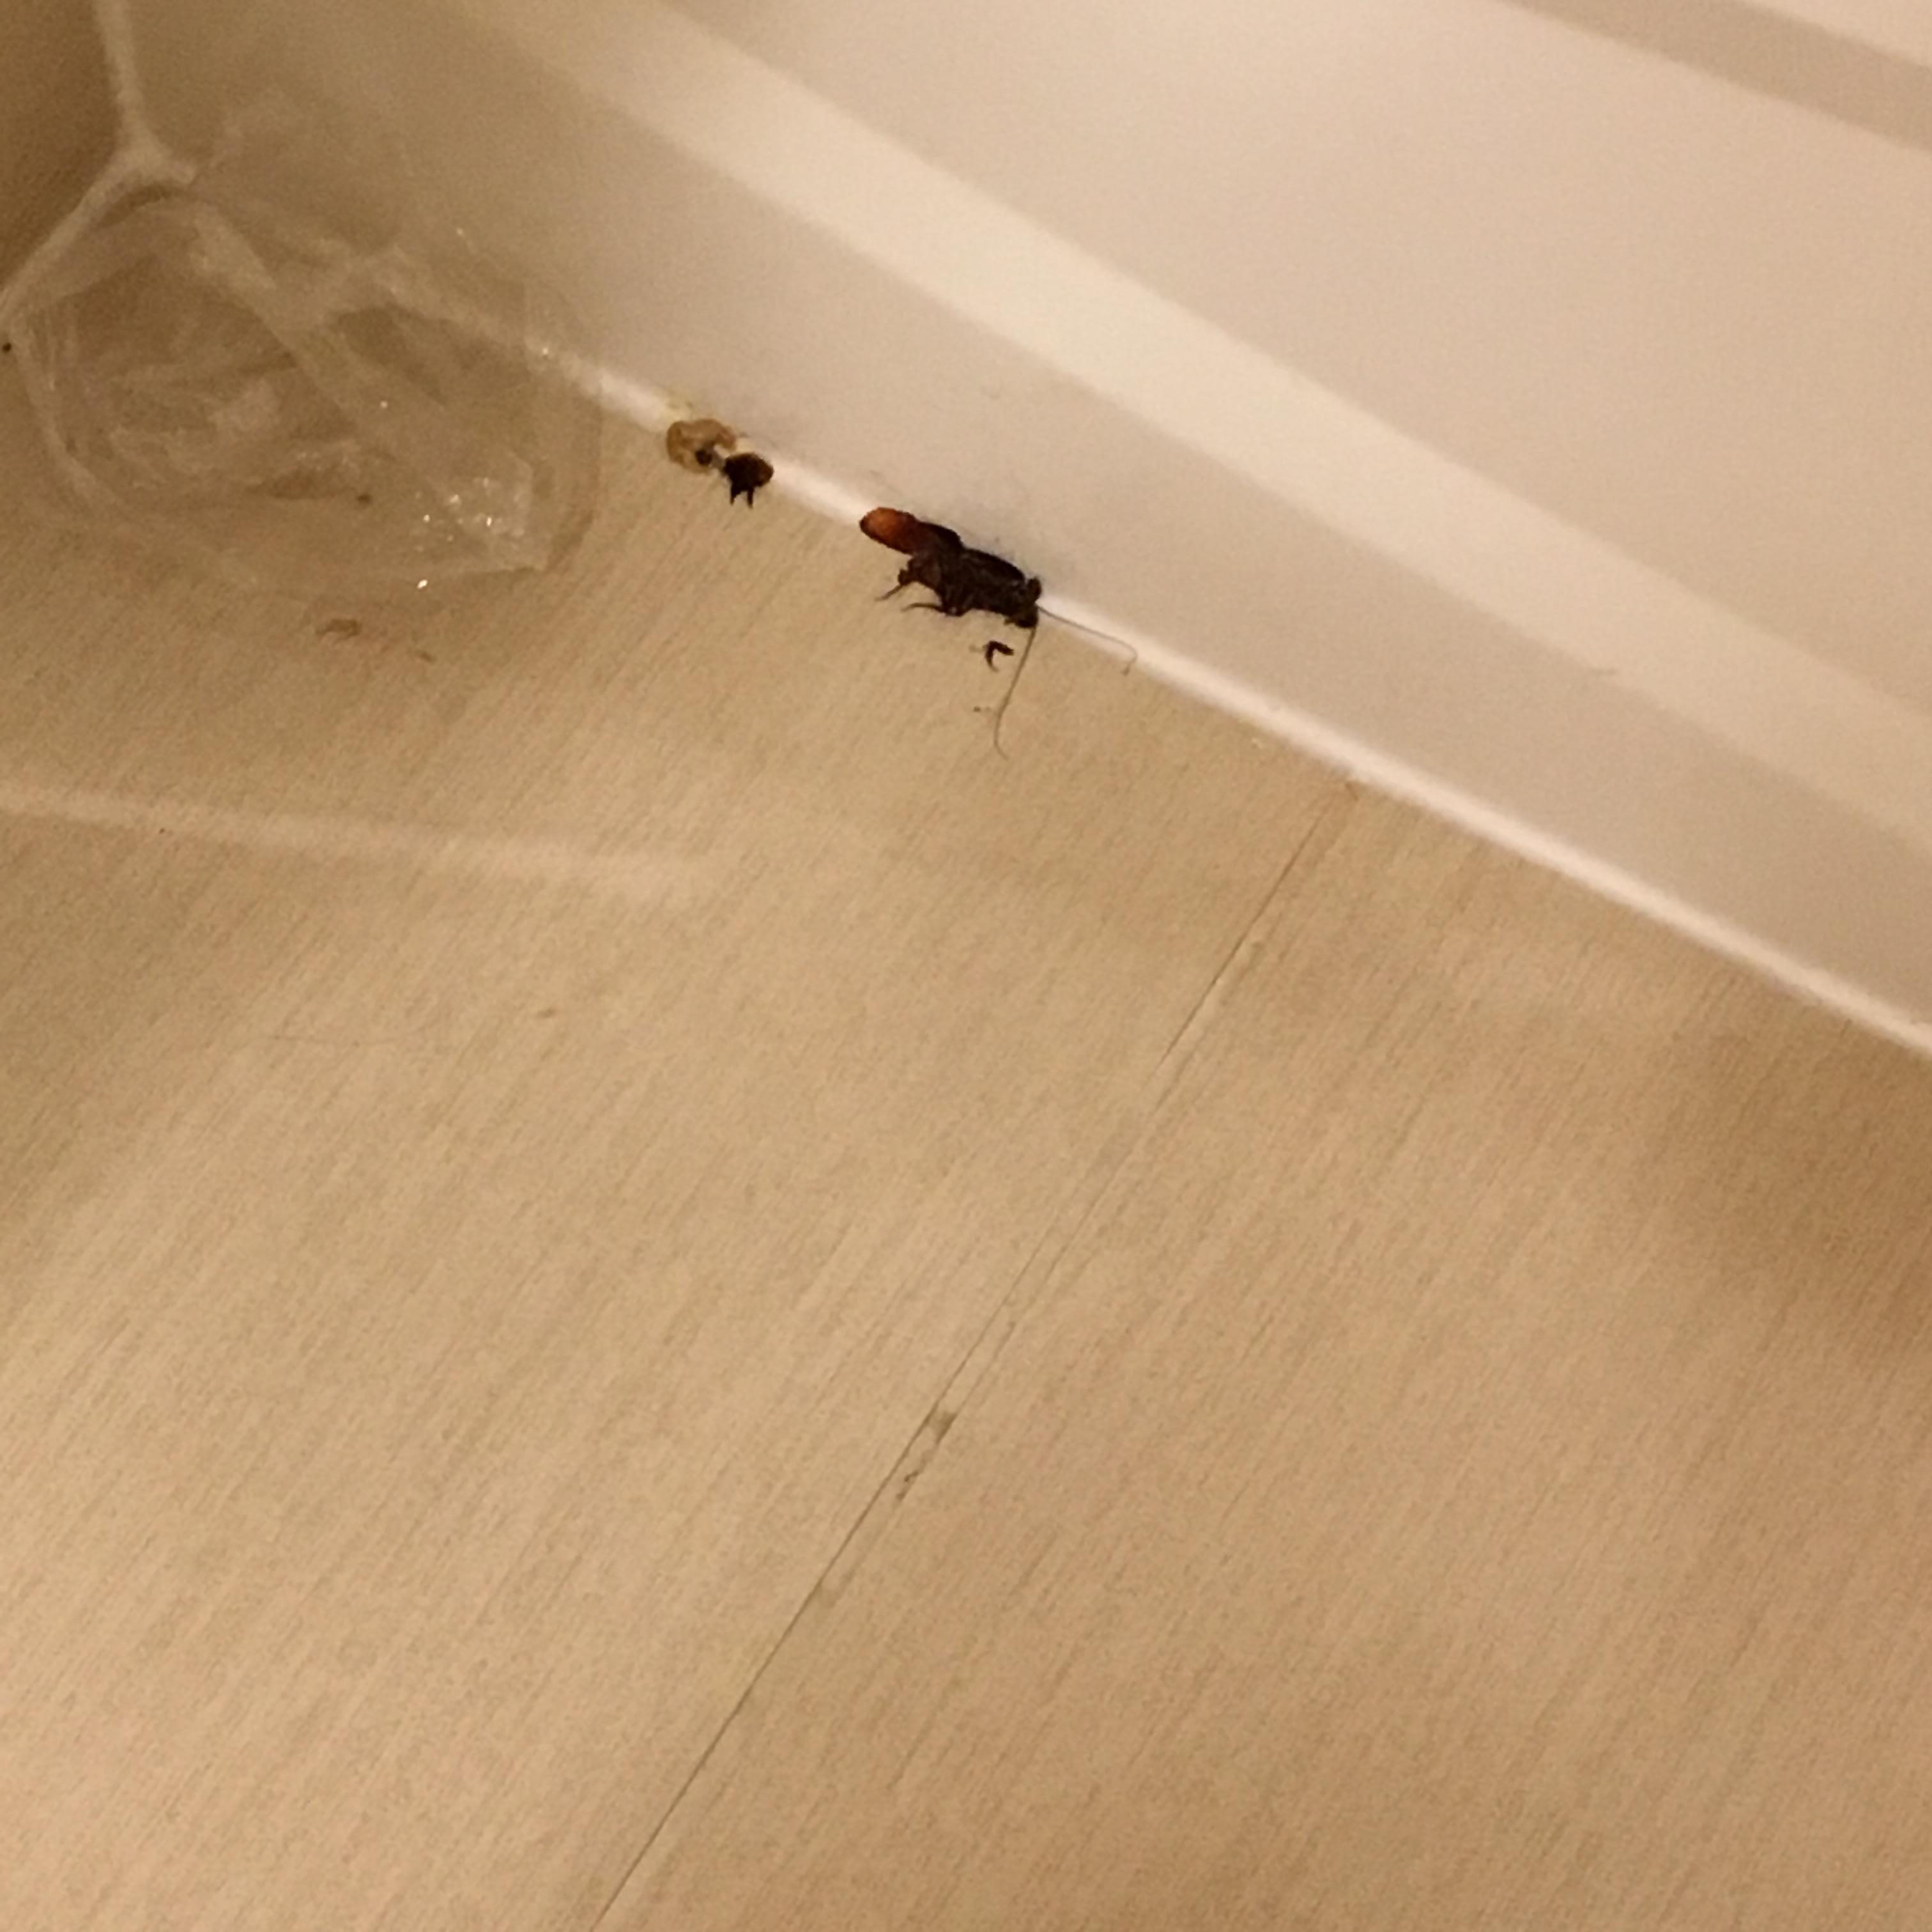 cockroaches In the restroom